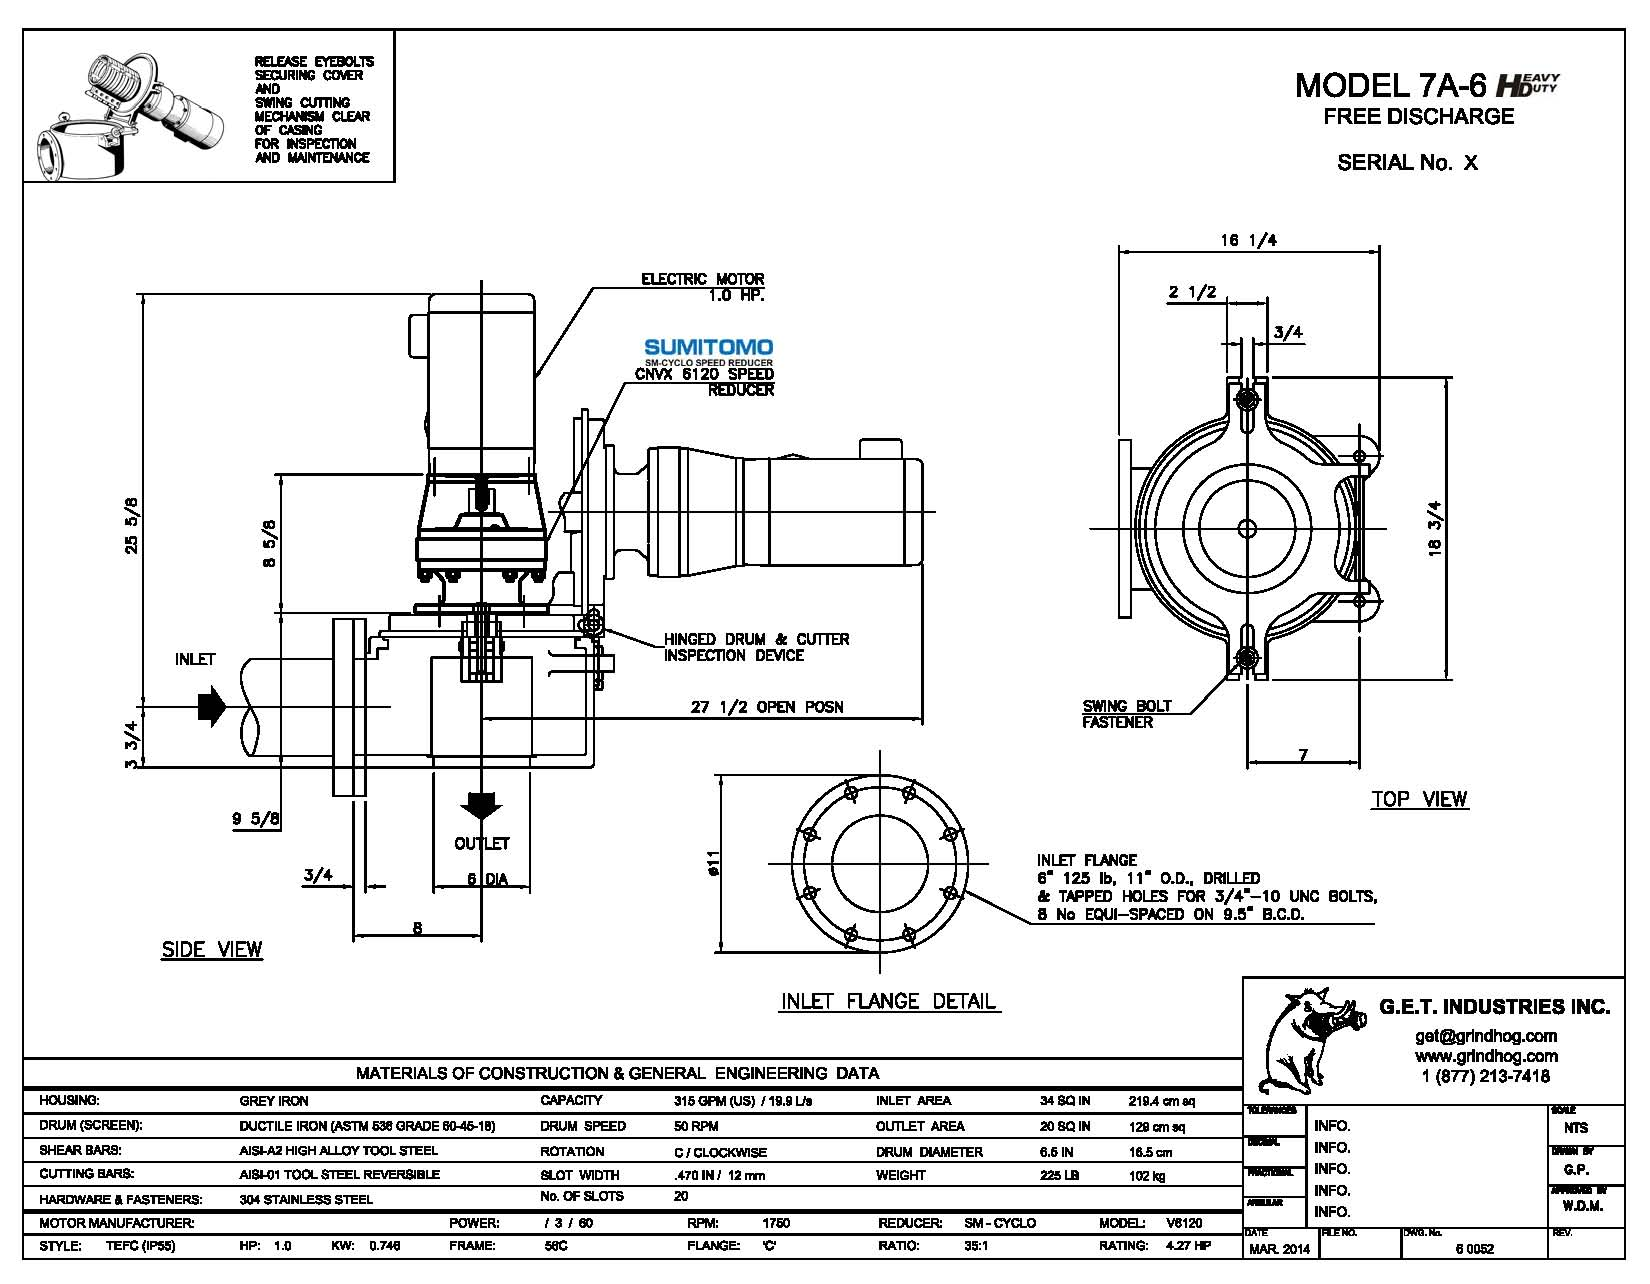 data drawing for Model 7A-6